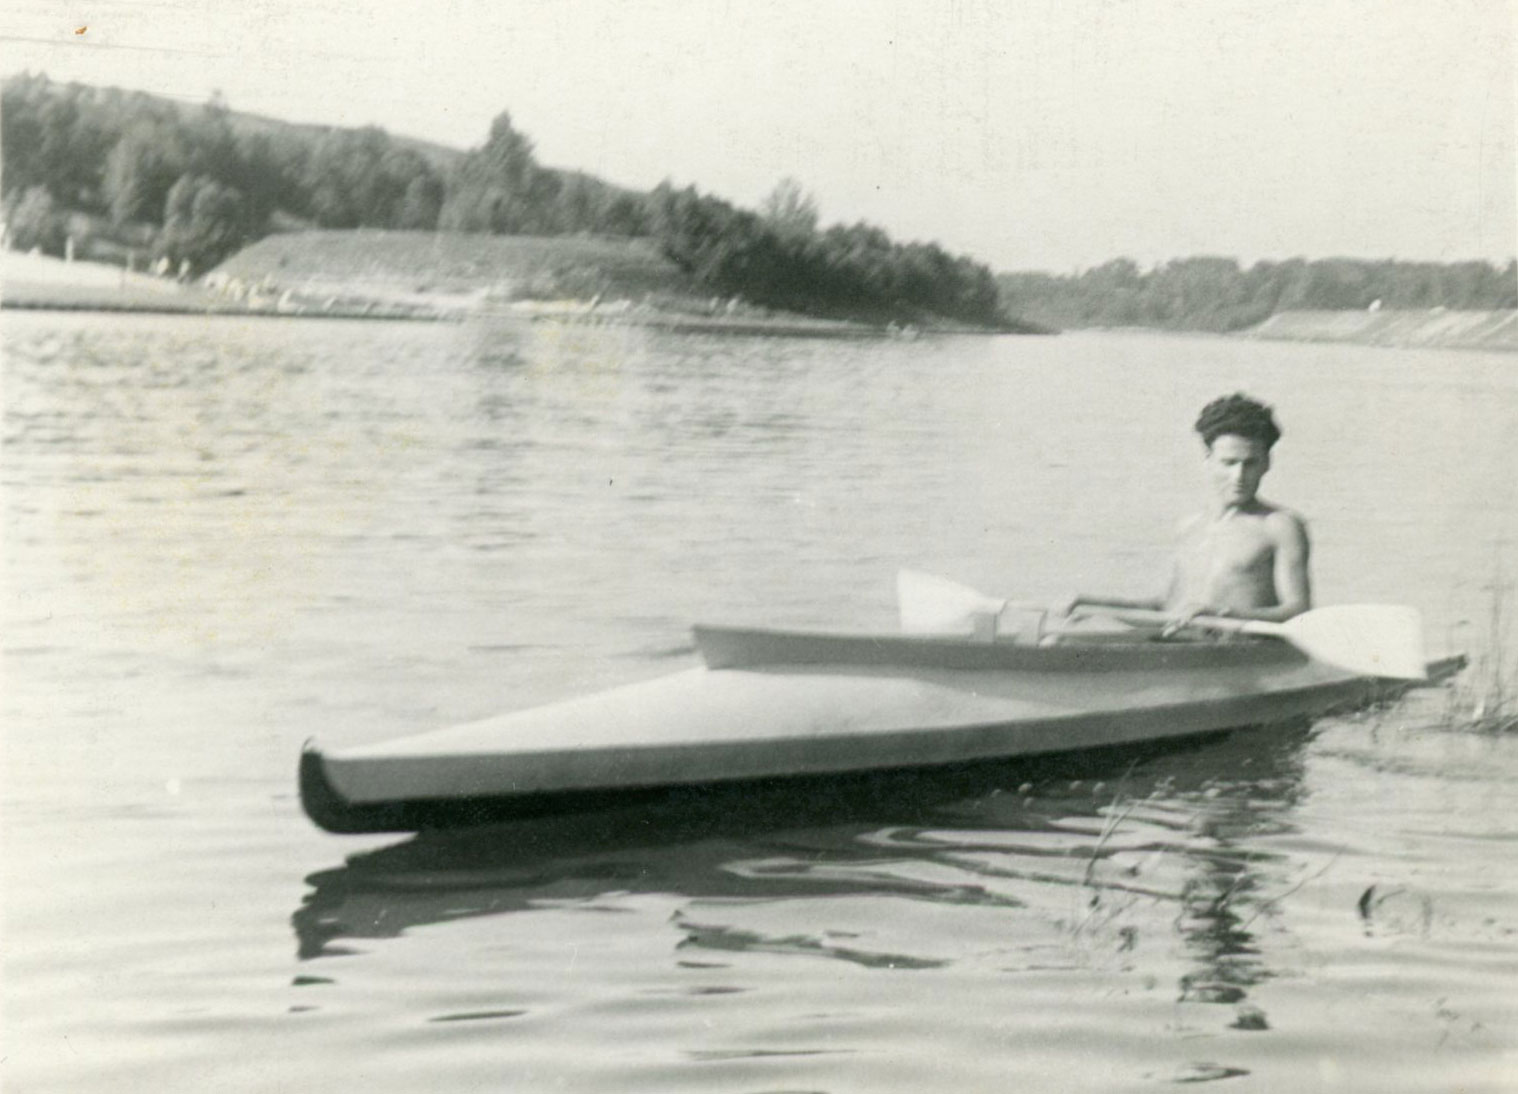 Joshua and the Kayak at the Kayak Champion of Lithuania, singles 1000 m (1953).